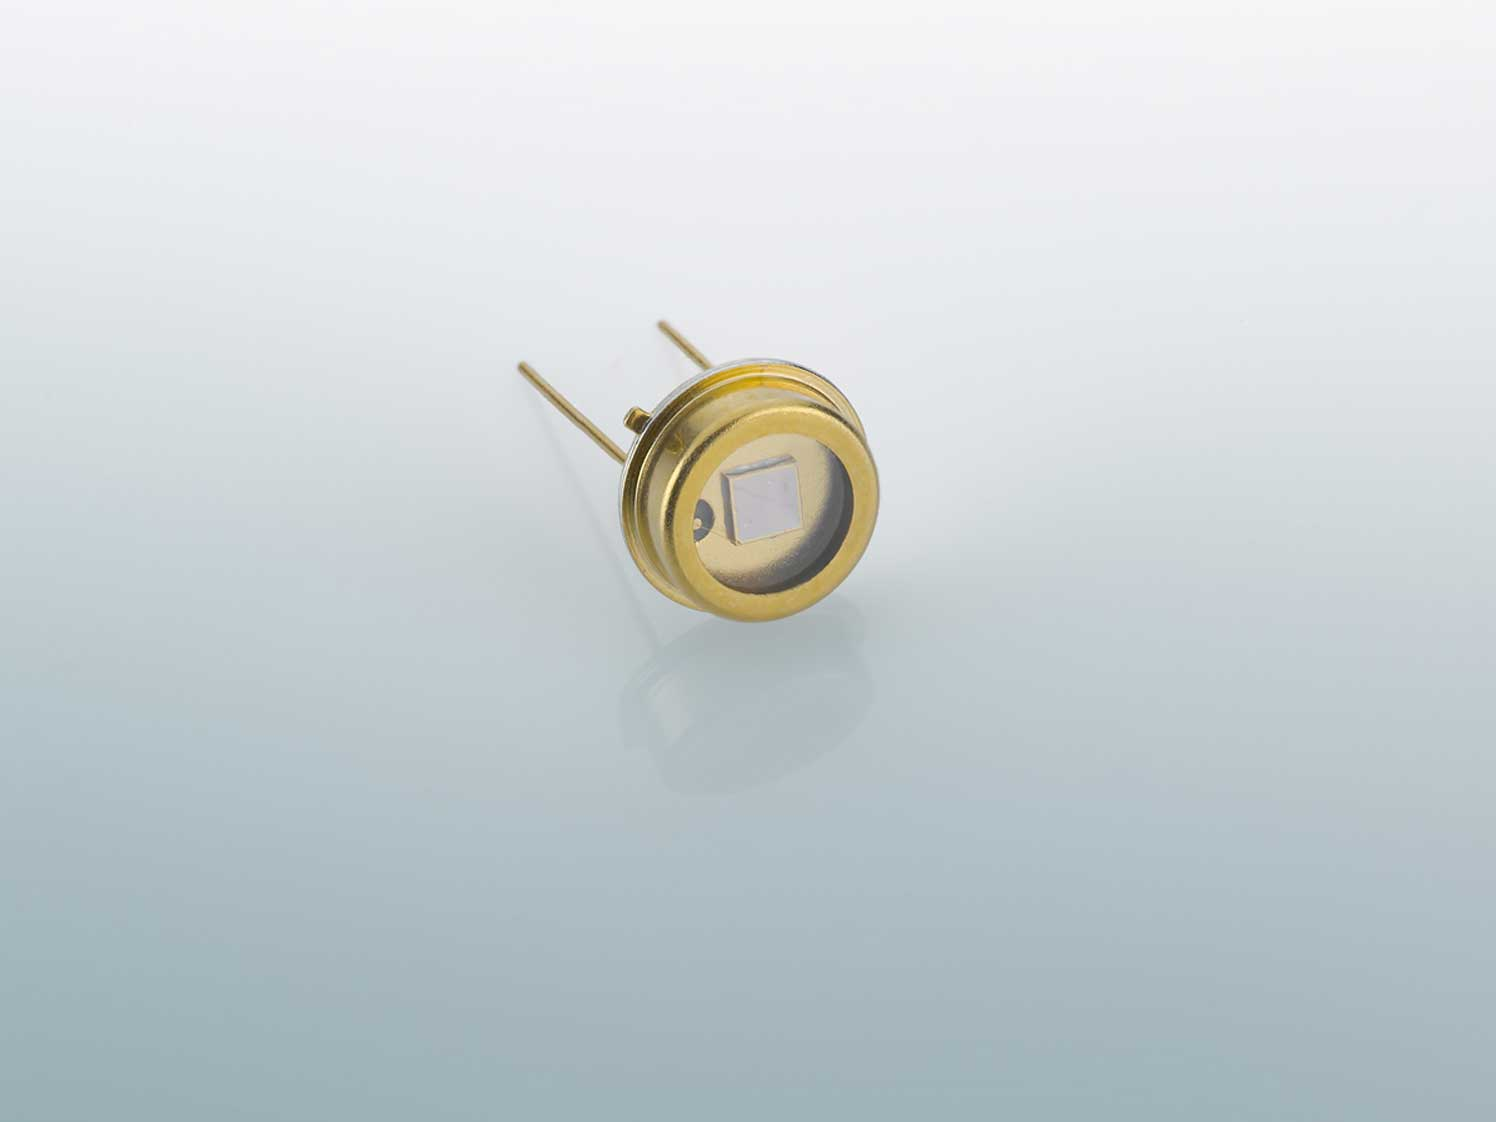 Jenoptik photodiodes UV safe stable reliable efficient